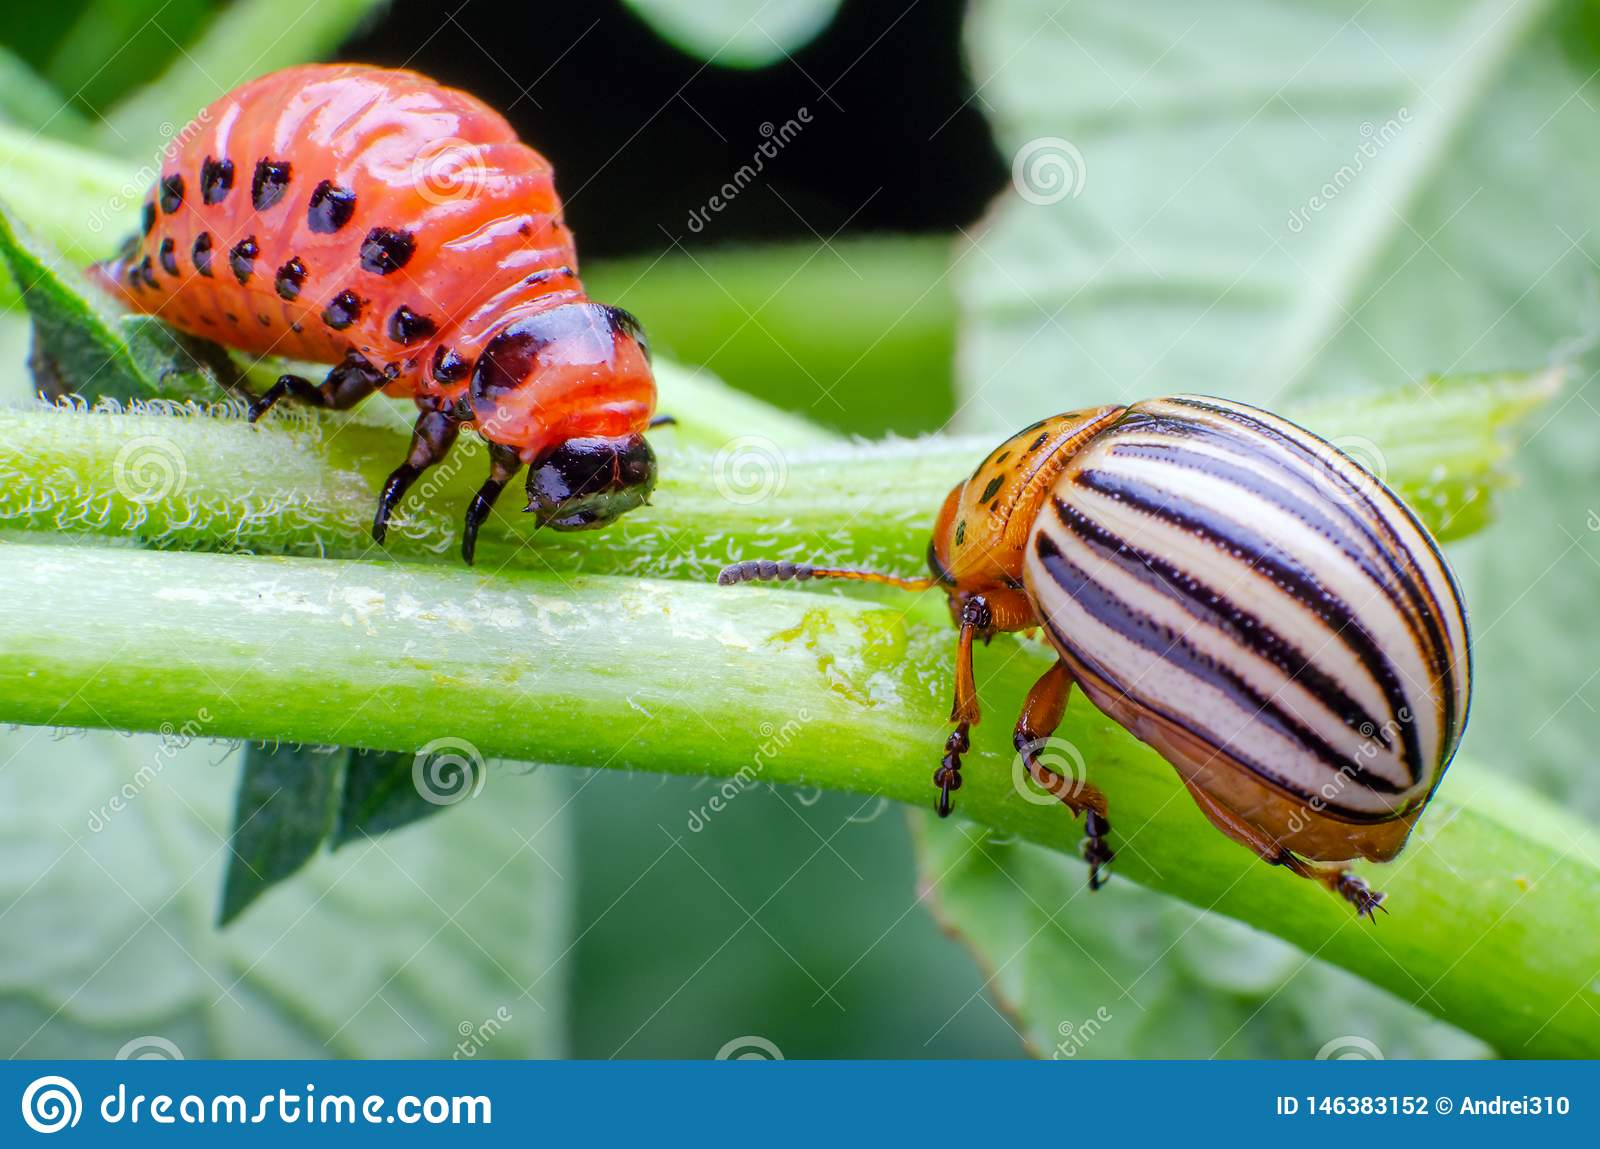 Colorado potato beetle and red larva crawling and eating potato leaves